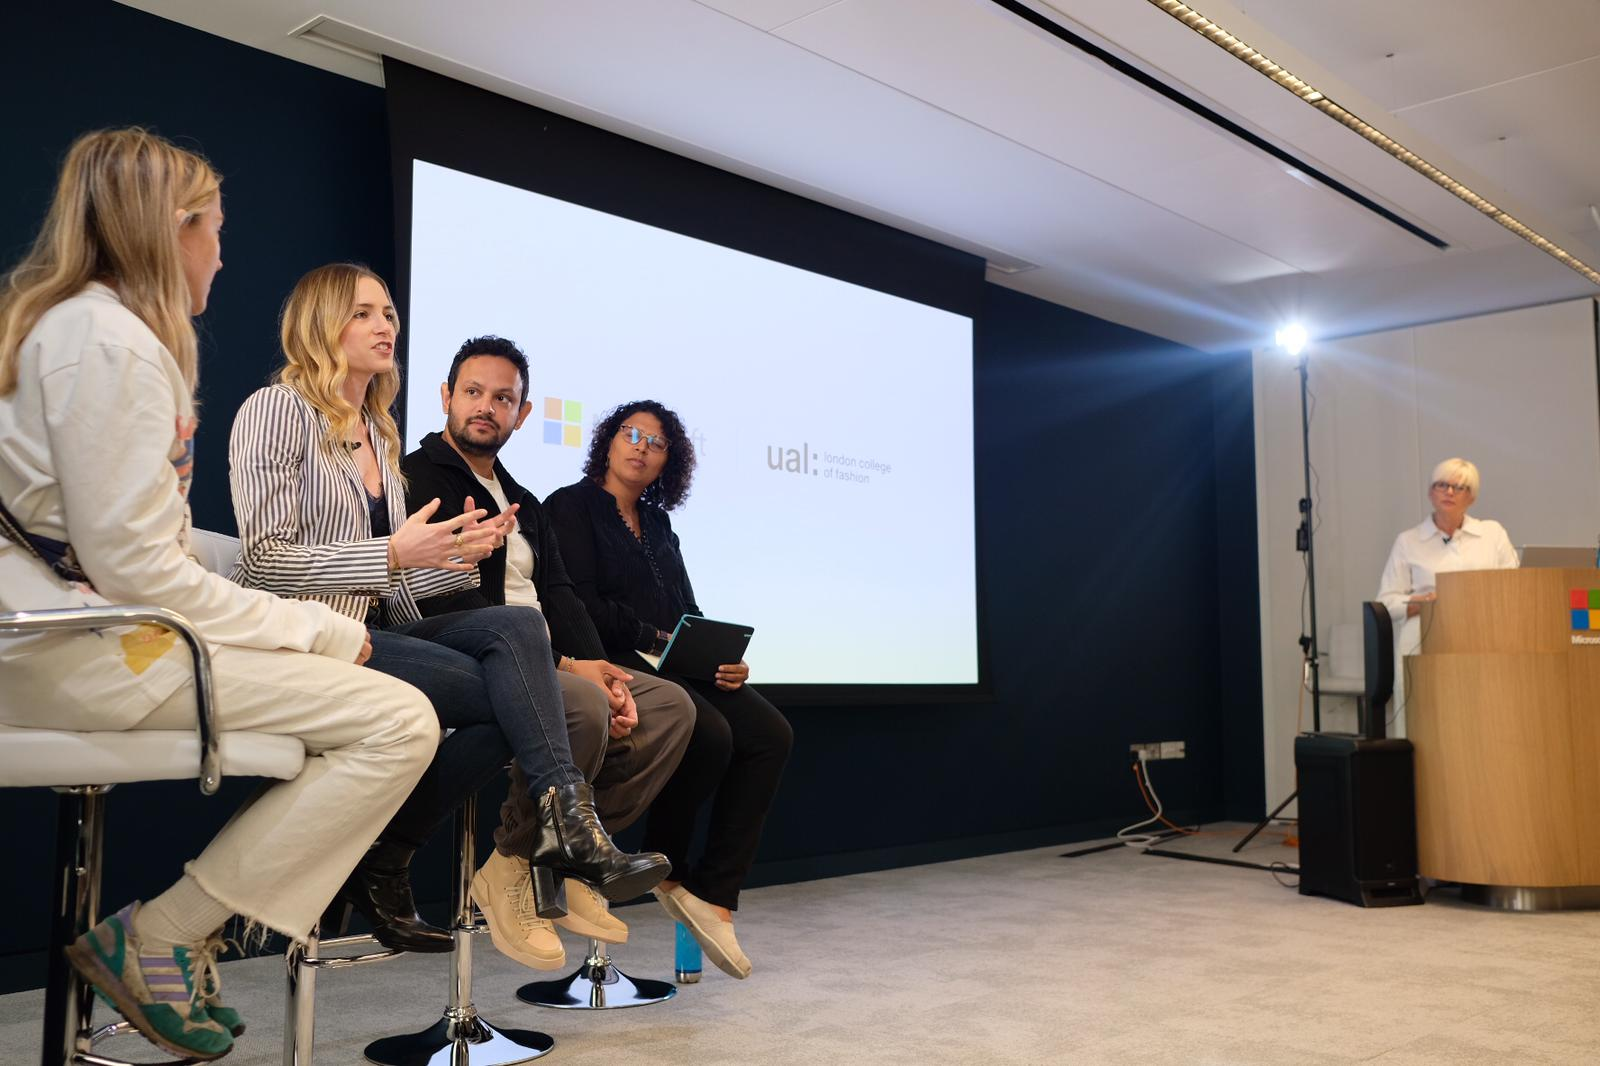 Moin Roberts-Islam of FIA sat on panel discussion for Microsoft alongside Bethany Williams, Irene-Marie Seelig